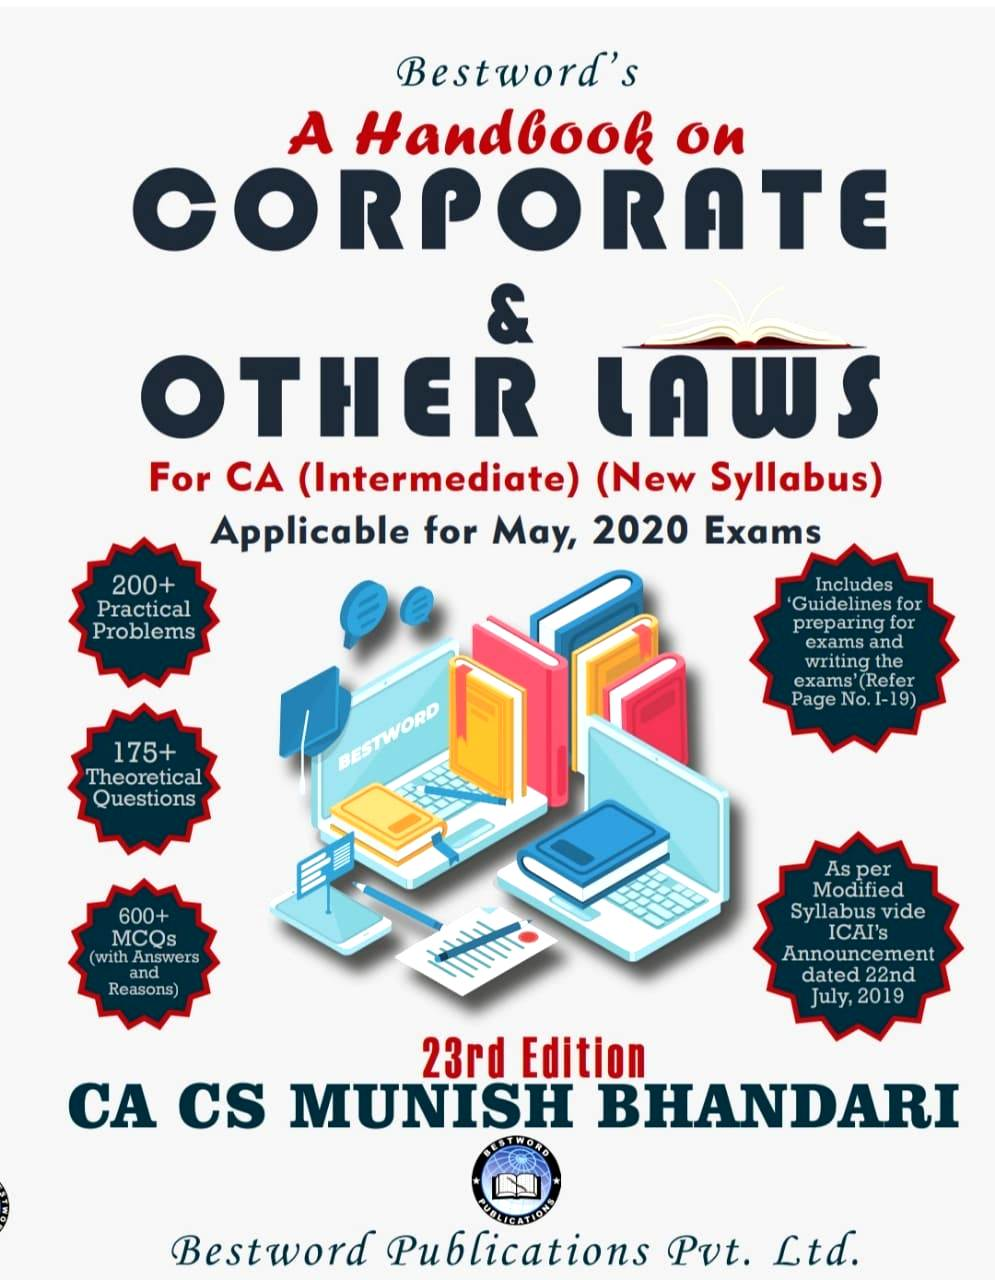 Bestword's A Handbook on Corporate and other Laws for CA Inter (IPCC) By Munish Bhandari Applicable for May 2020 Exam